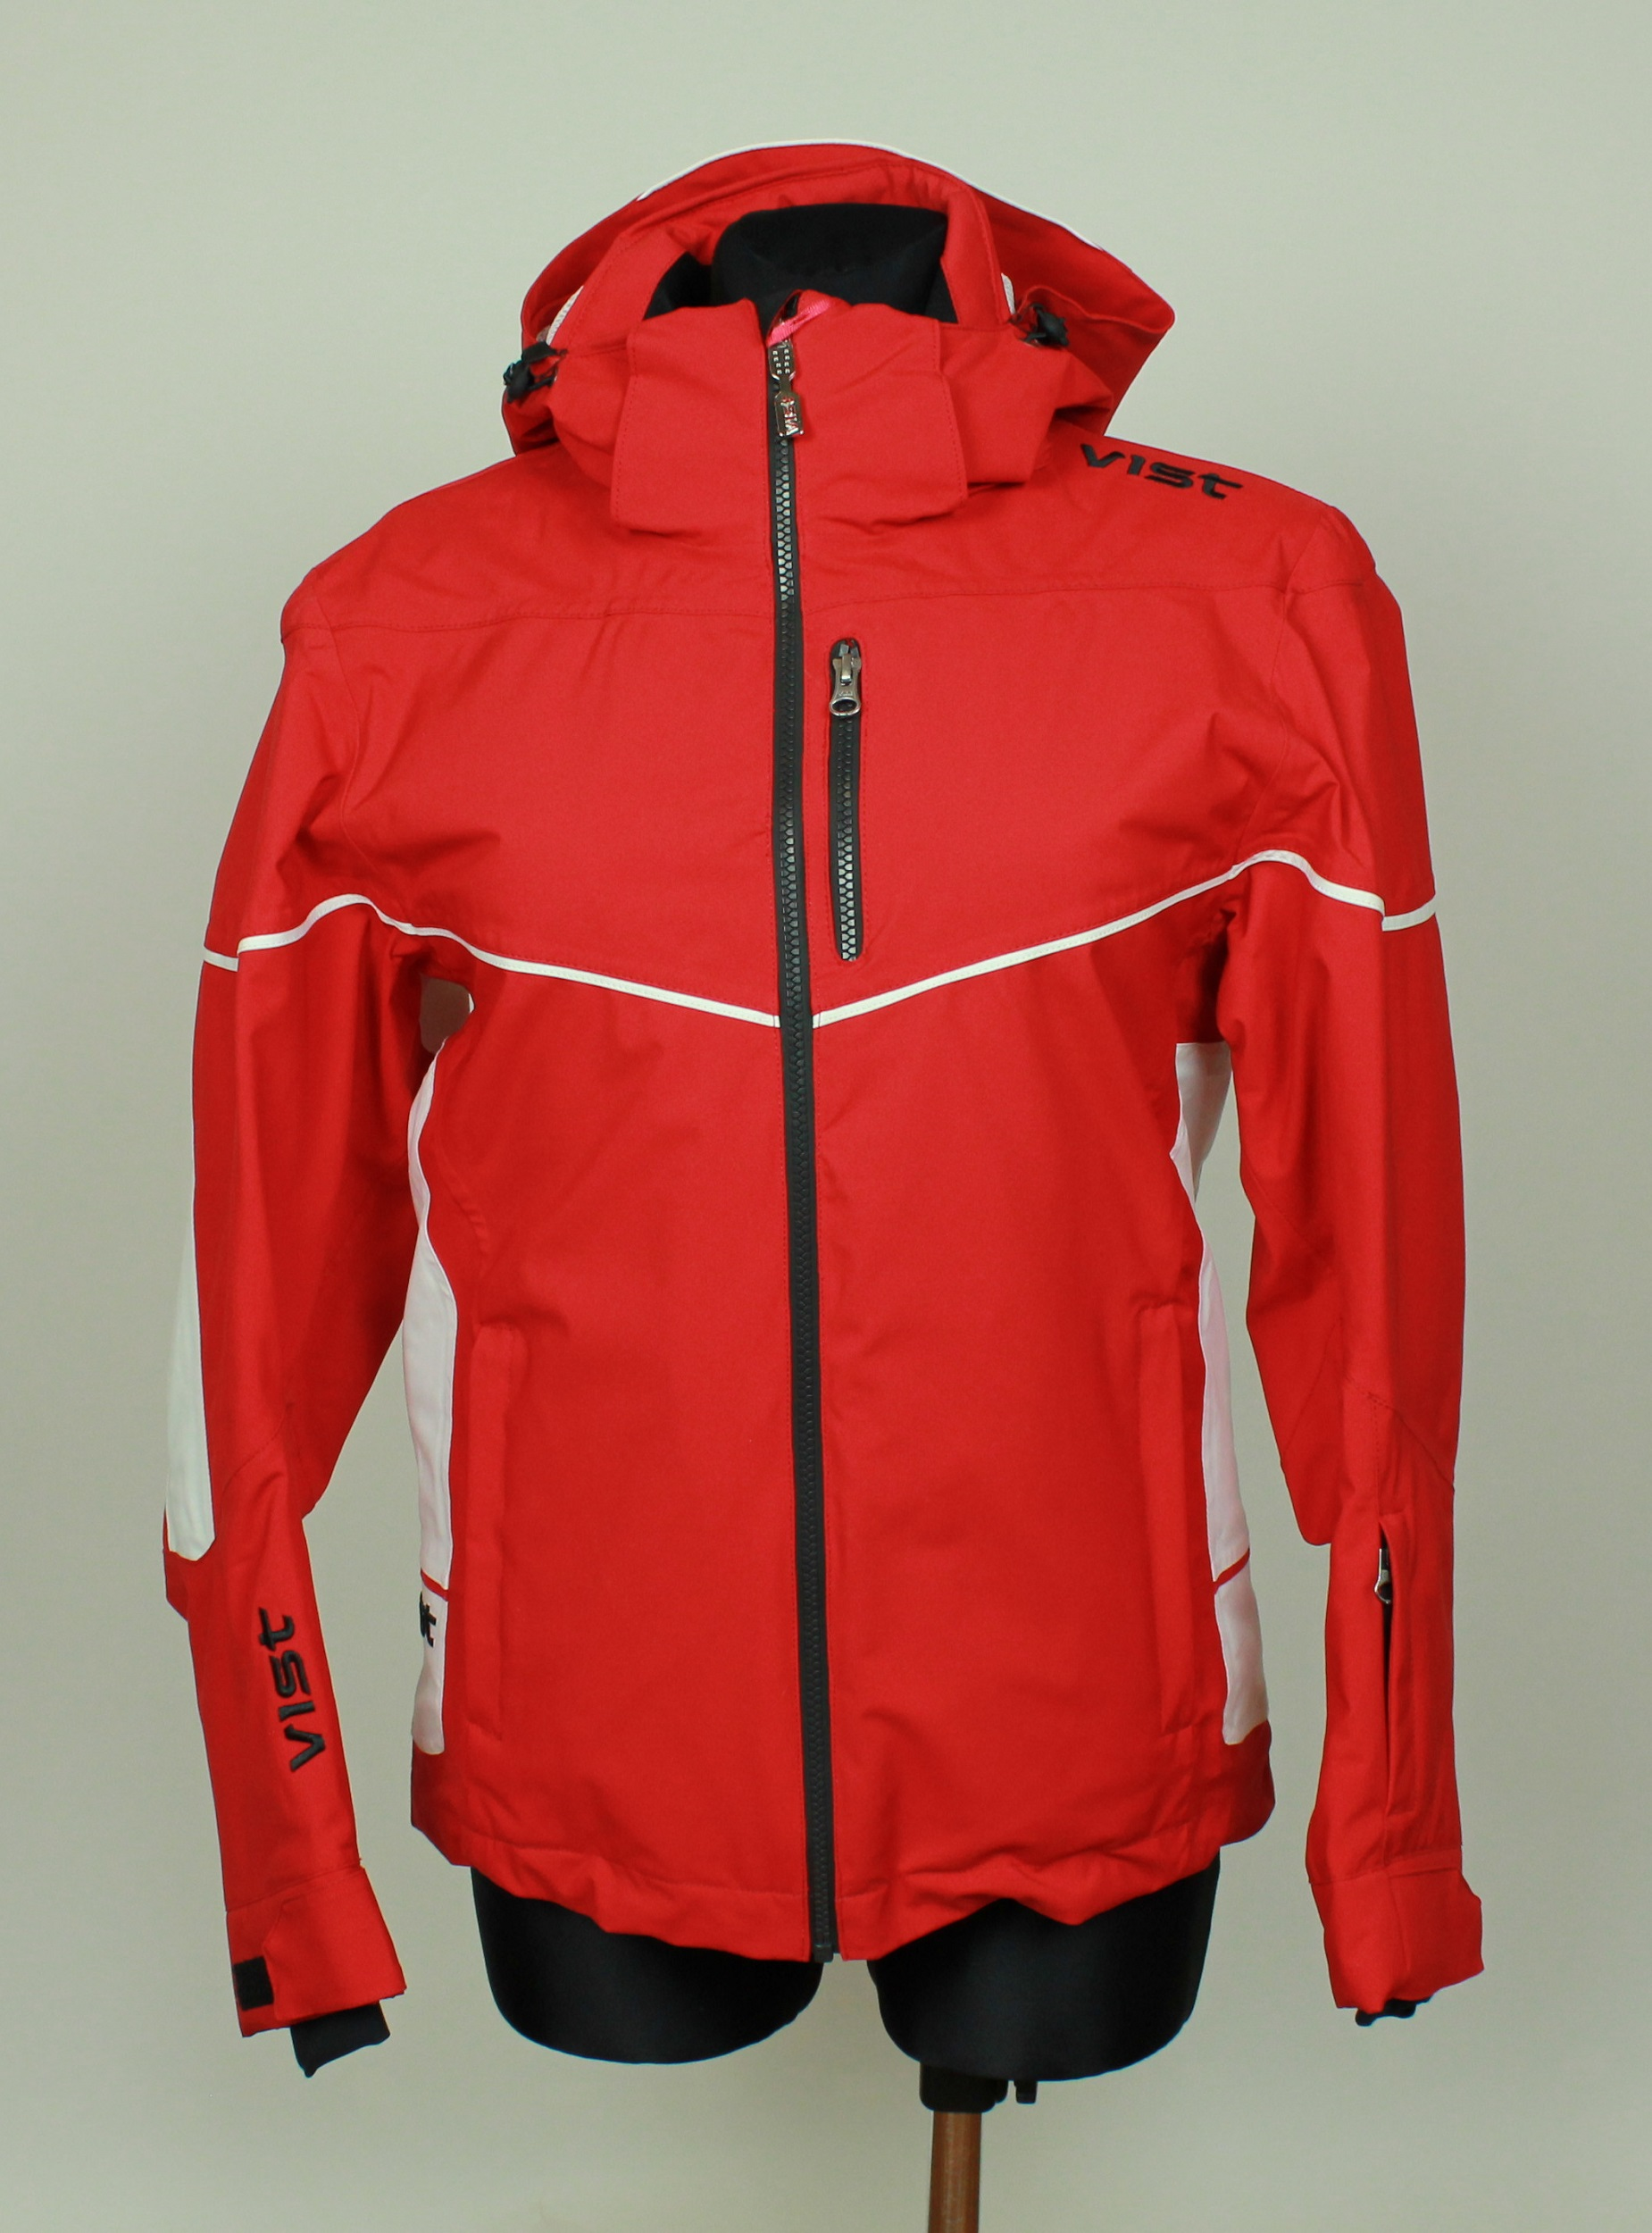 Vist Olimpia Insulated Ski Jacket